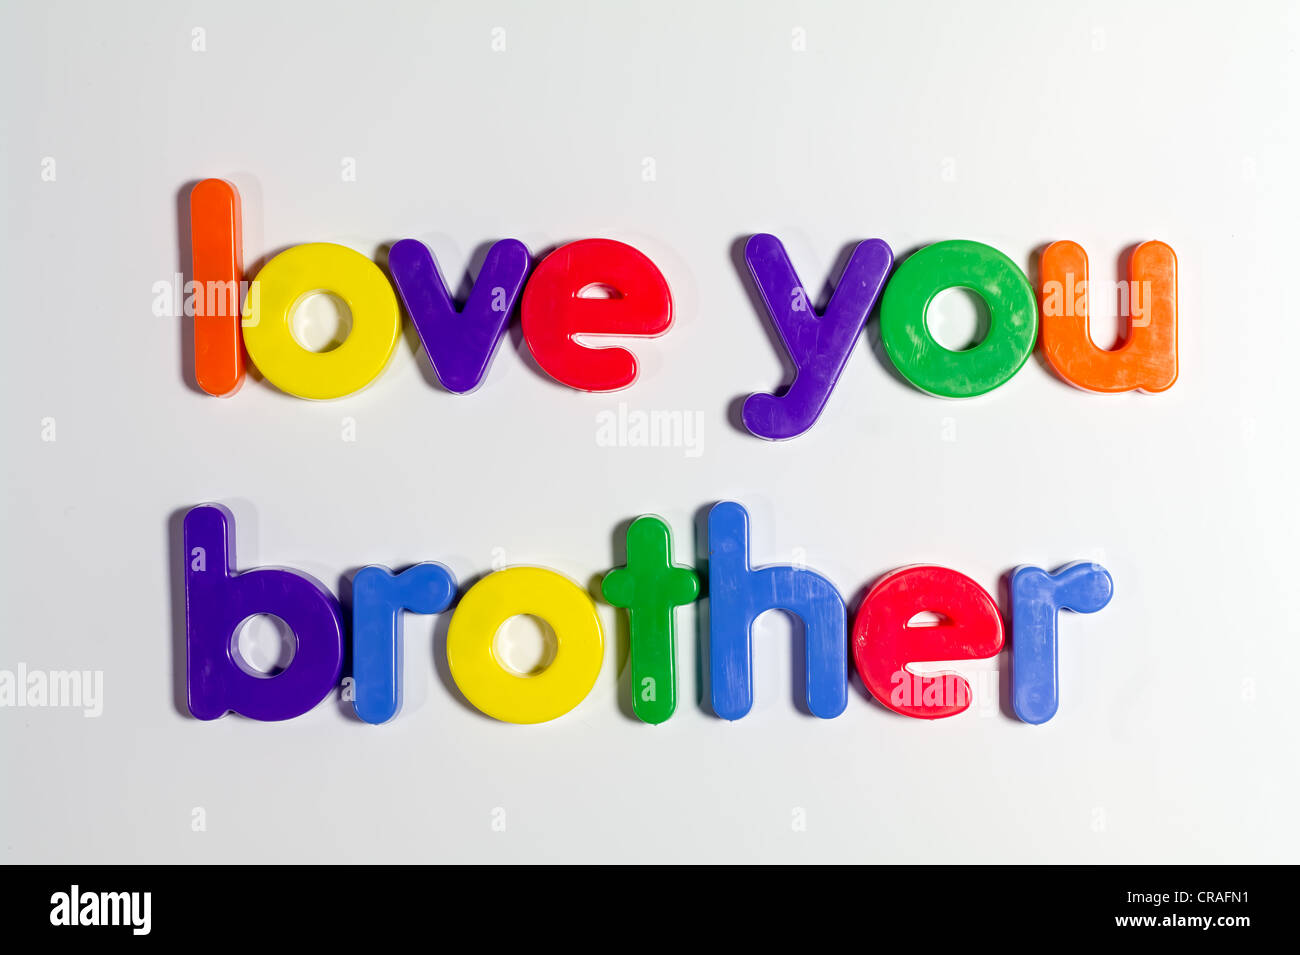 Love You Brother Written With Fridge Magnets Stock Photo 48789693